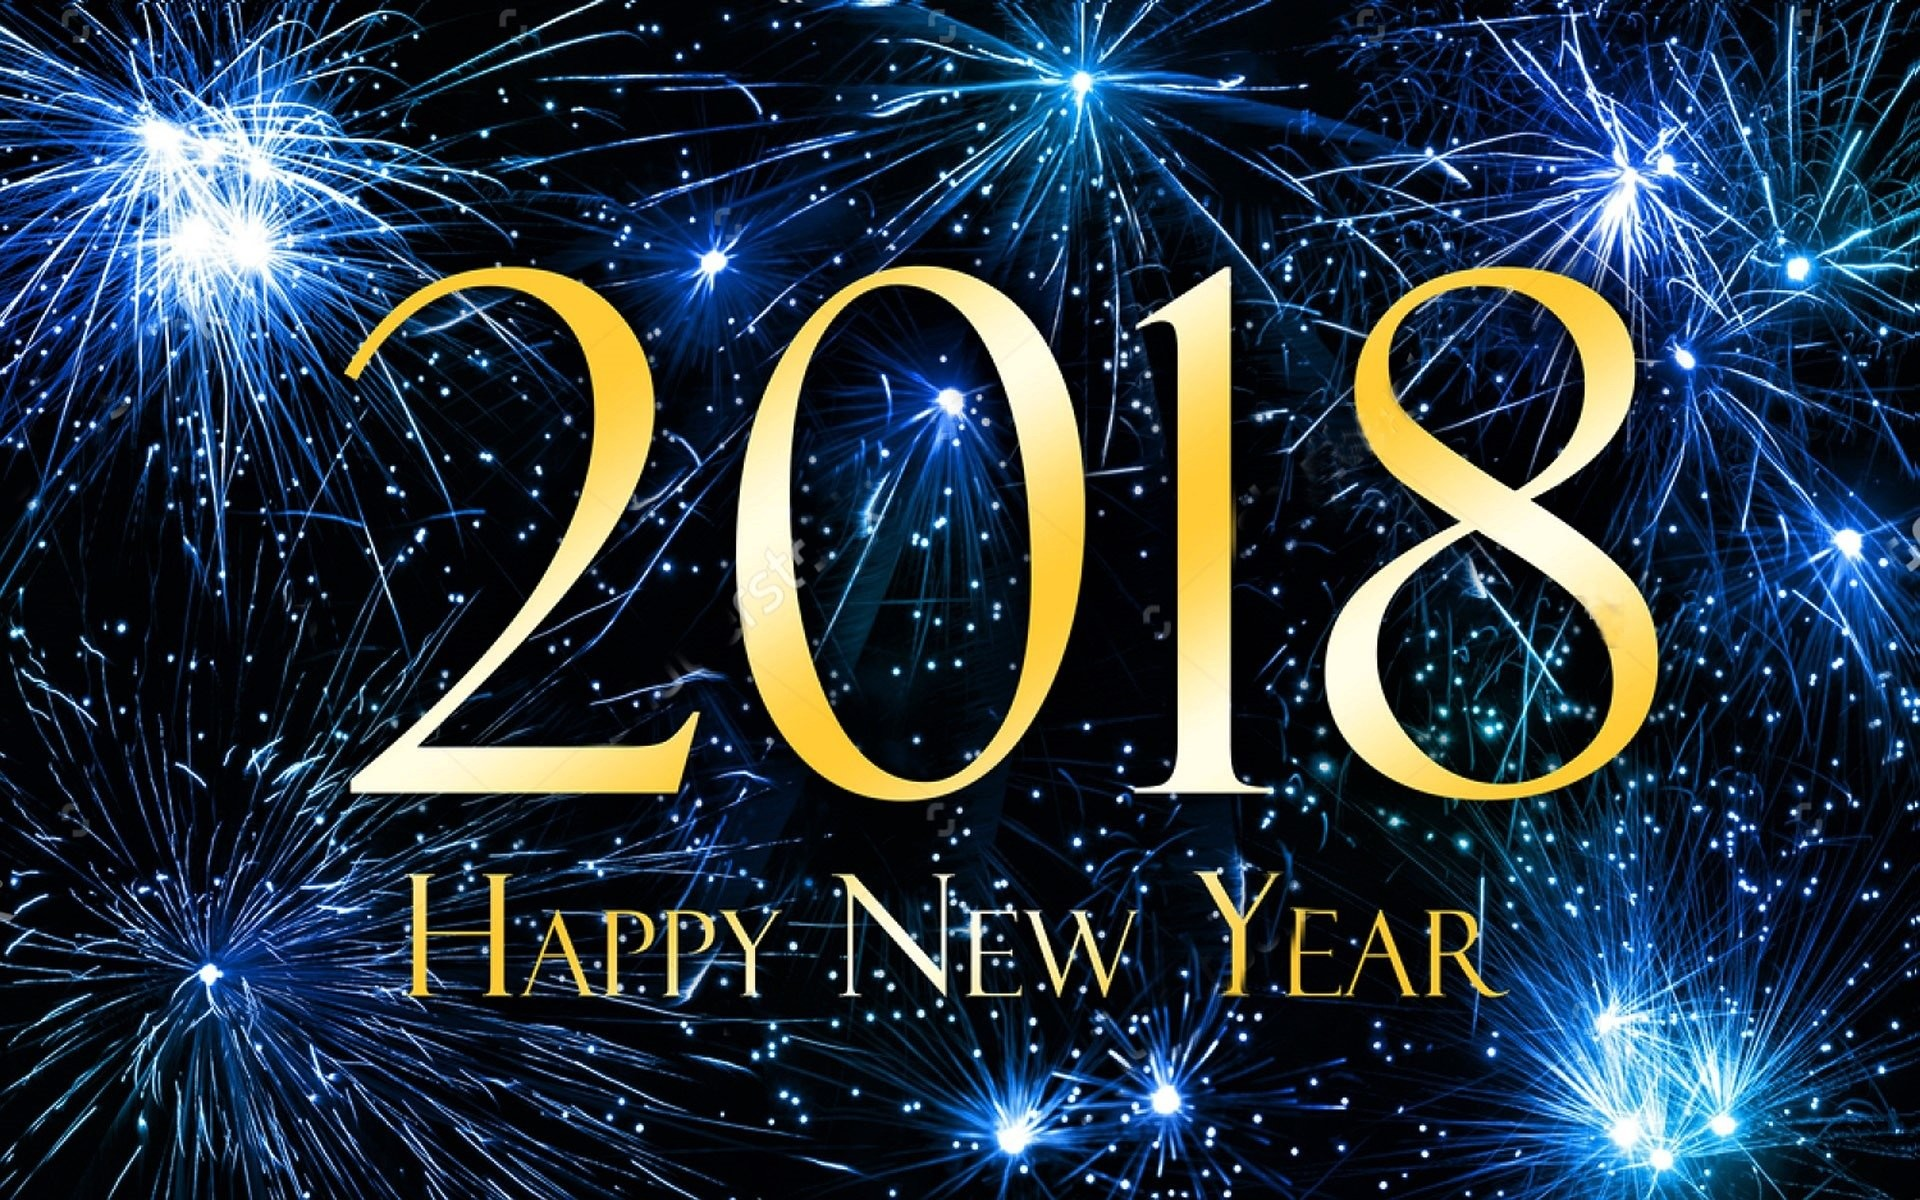 1920x1200 tagsfull hd new year wallpaper hd new wallpapers 2018 hd new year 2018 wallpaper hd new year wallpaper hd new year wallpaper 2018